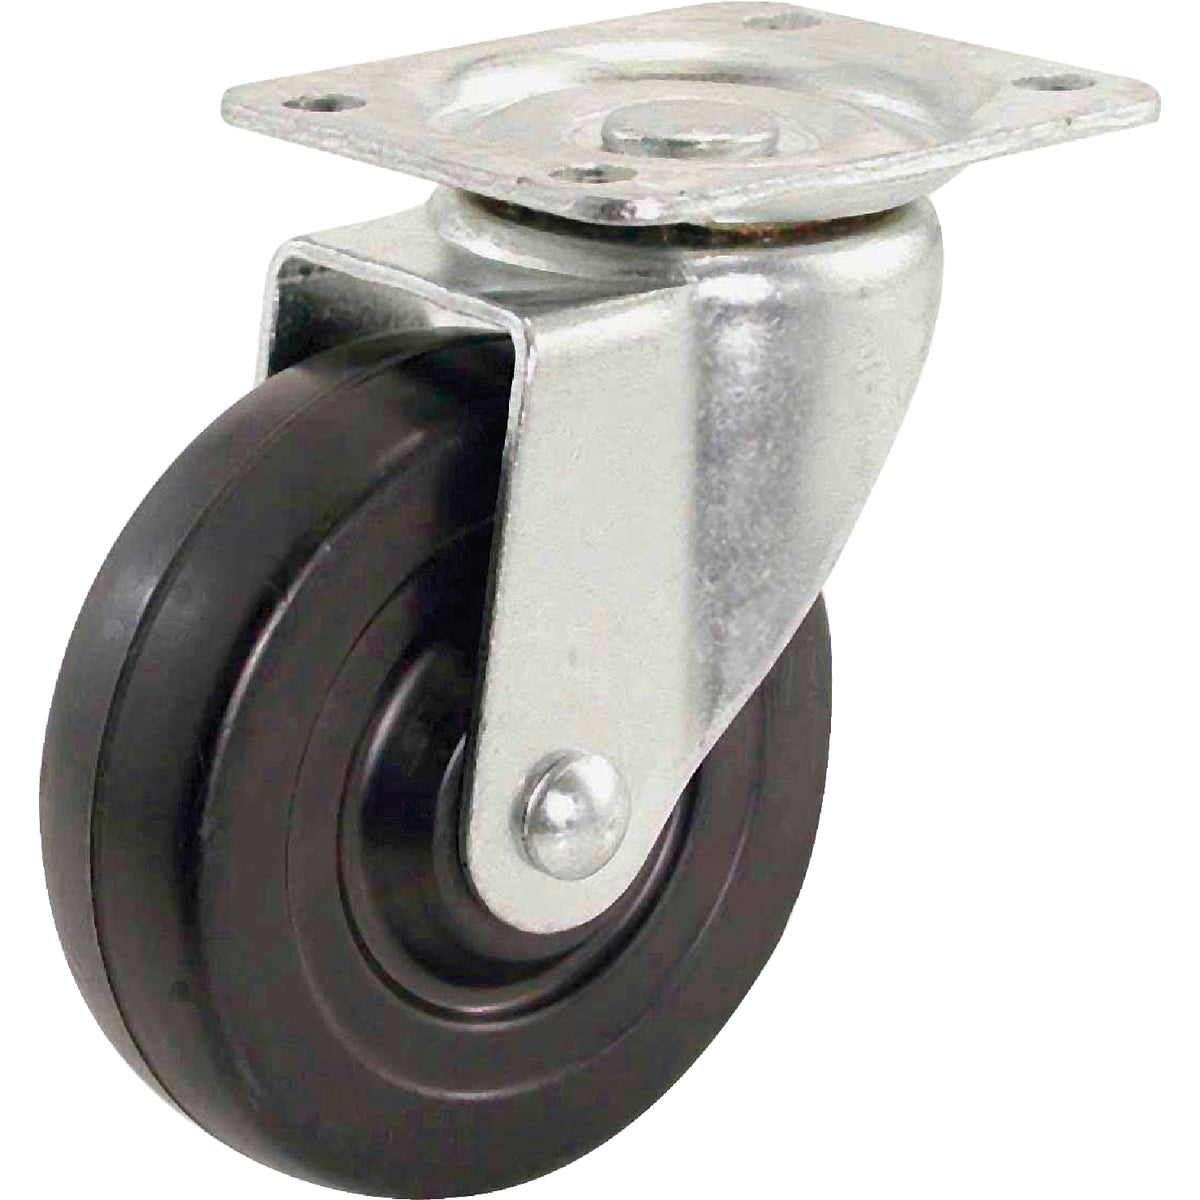 "4"" RUBBER SWIVEL CASTER - 9629 by Shepherd Hardware"